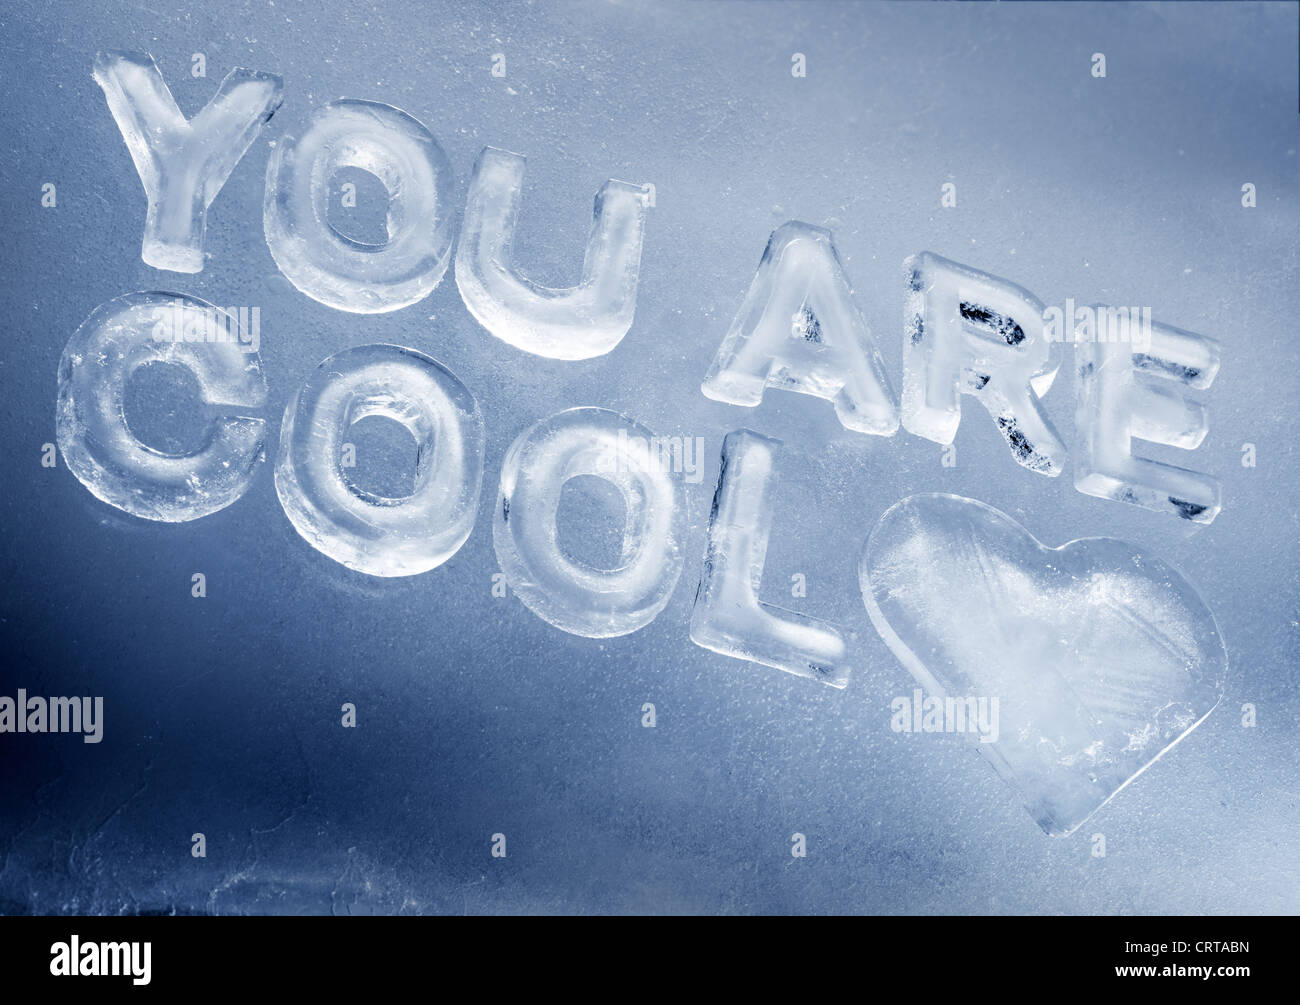 'You Are Cool' written with real ice letters. - Stock Image